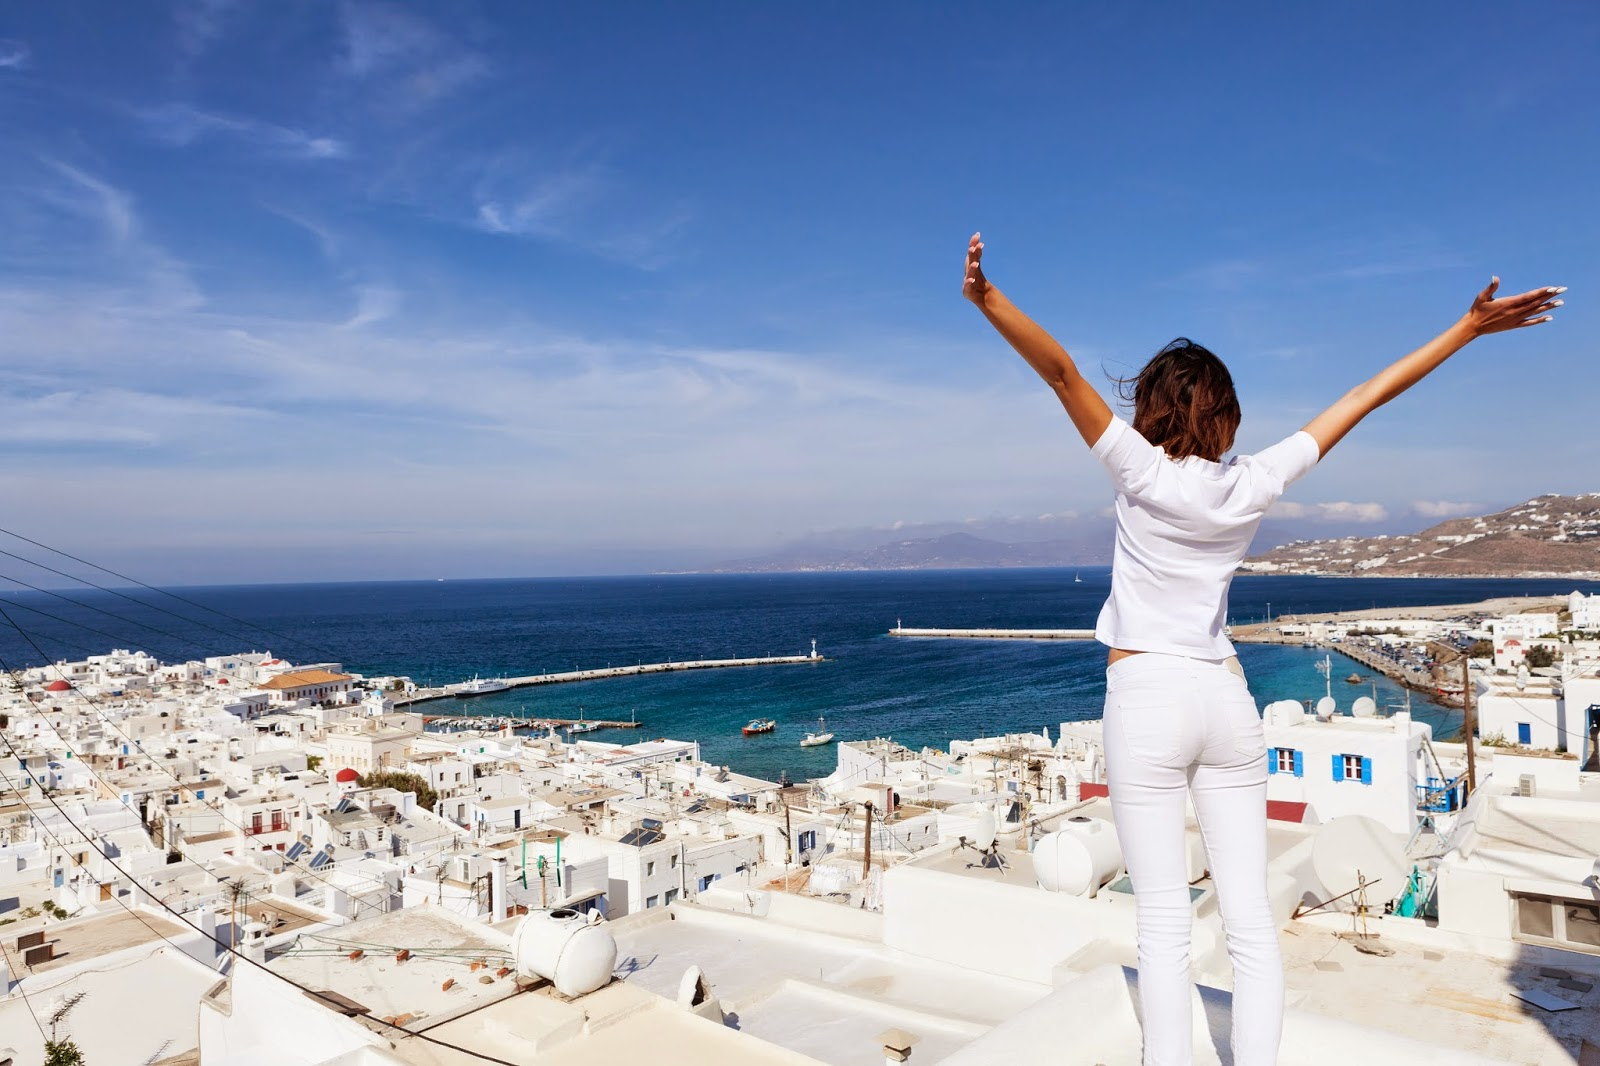 At 21.6 billion euros the contribution of tourism to Greece in 2018